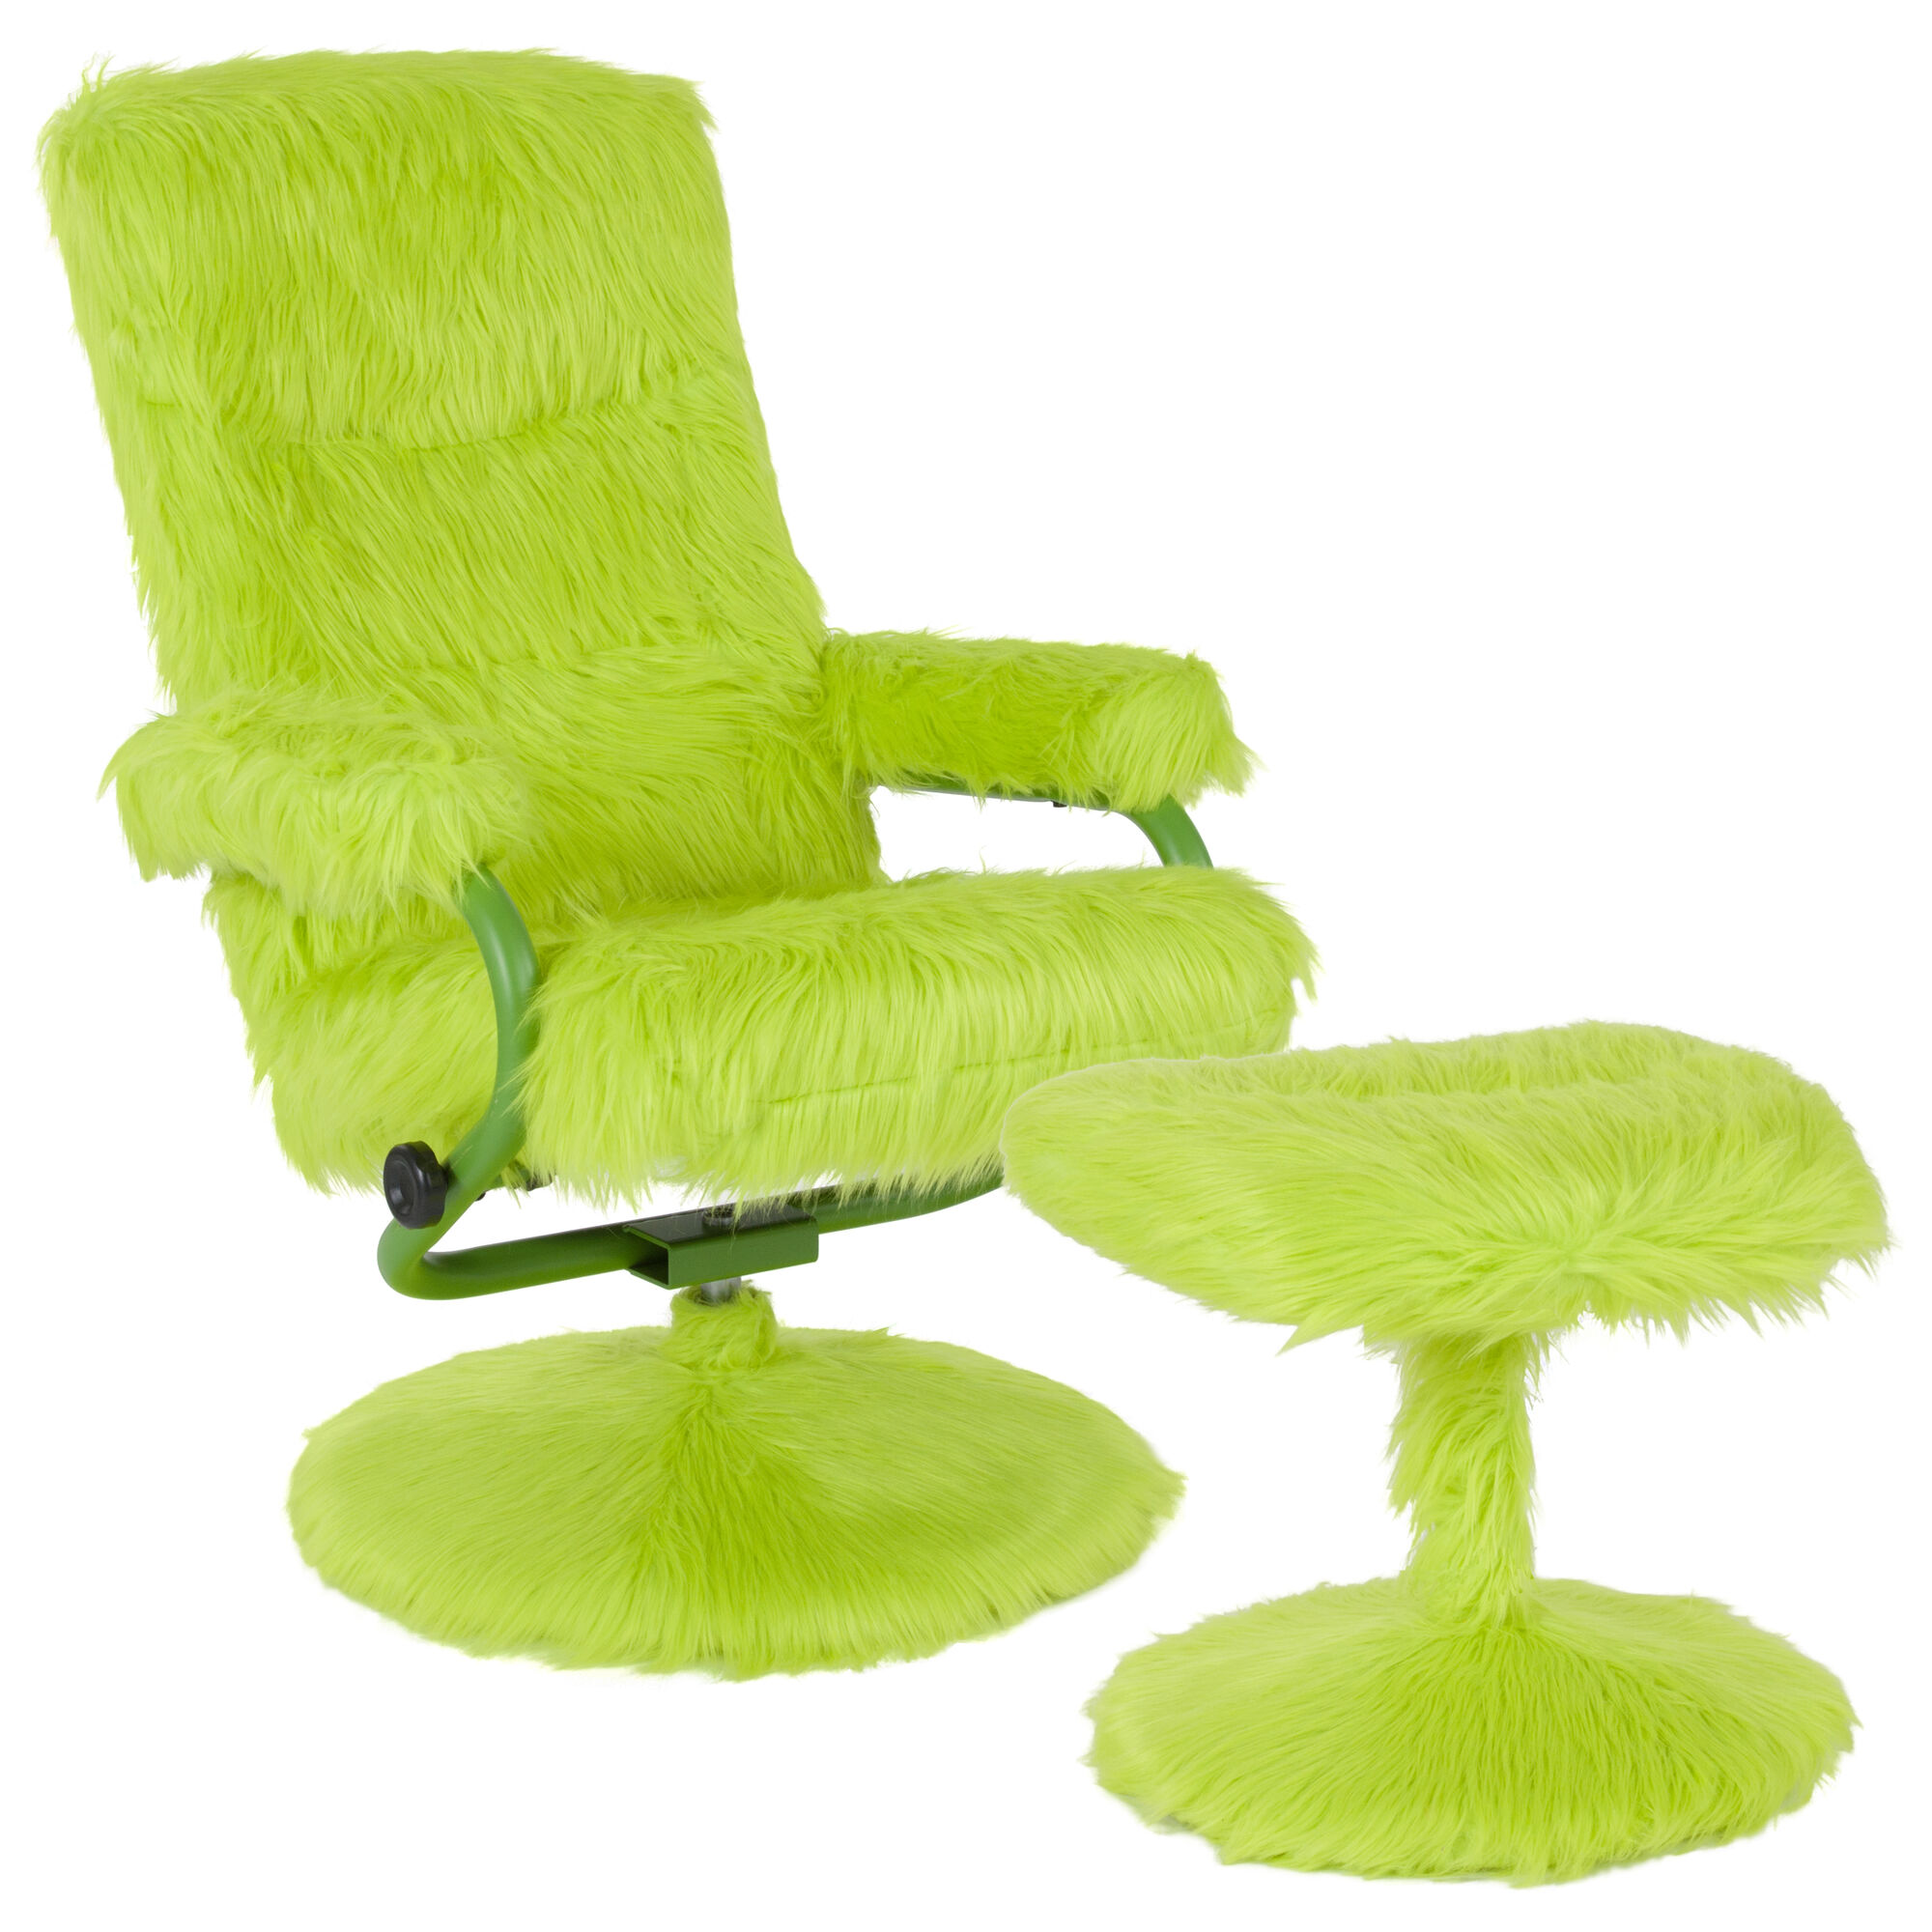 Pleasing East Side Contemporary Multi Position Recliner And Ottoman In Citrus Green Fur Alphanode Cool Chair Designs And Ideas Alphanodeonline